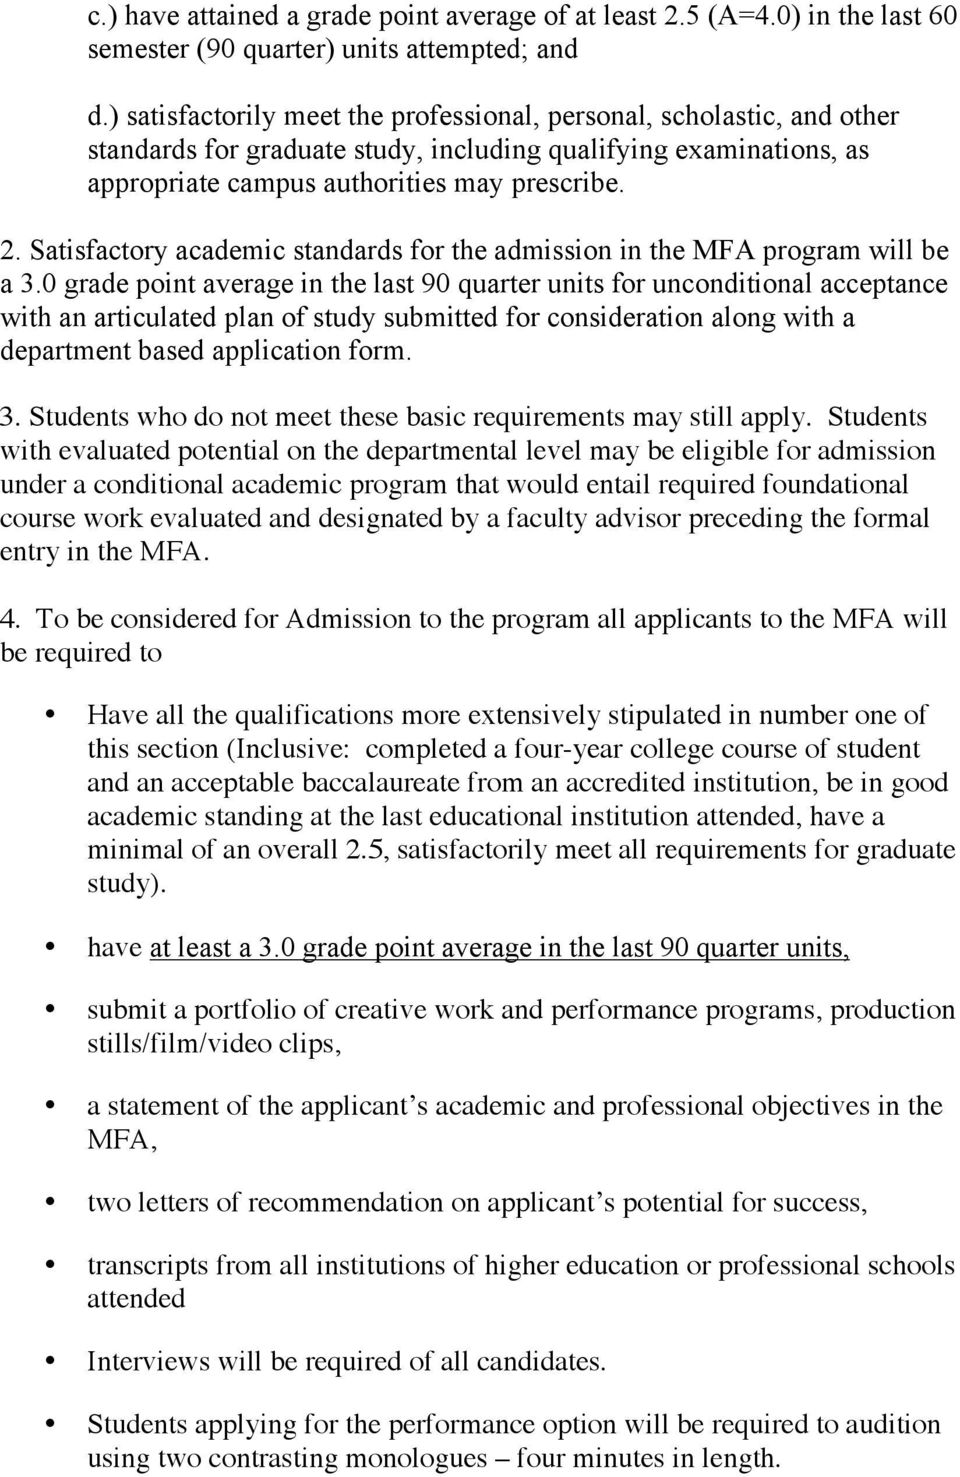 Satisfactory academic standards for the admission in the MFA program will be a 3.